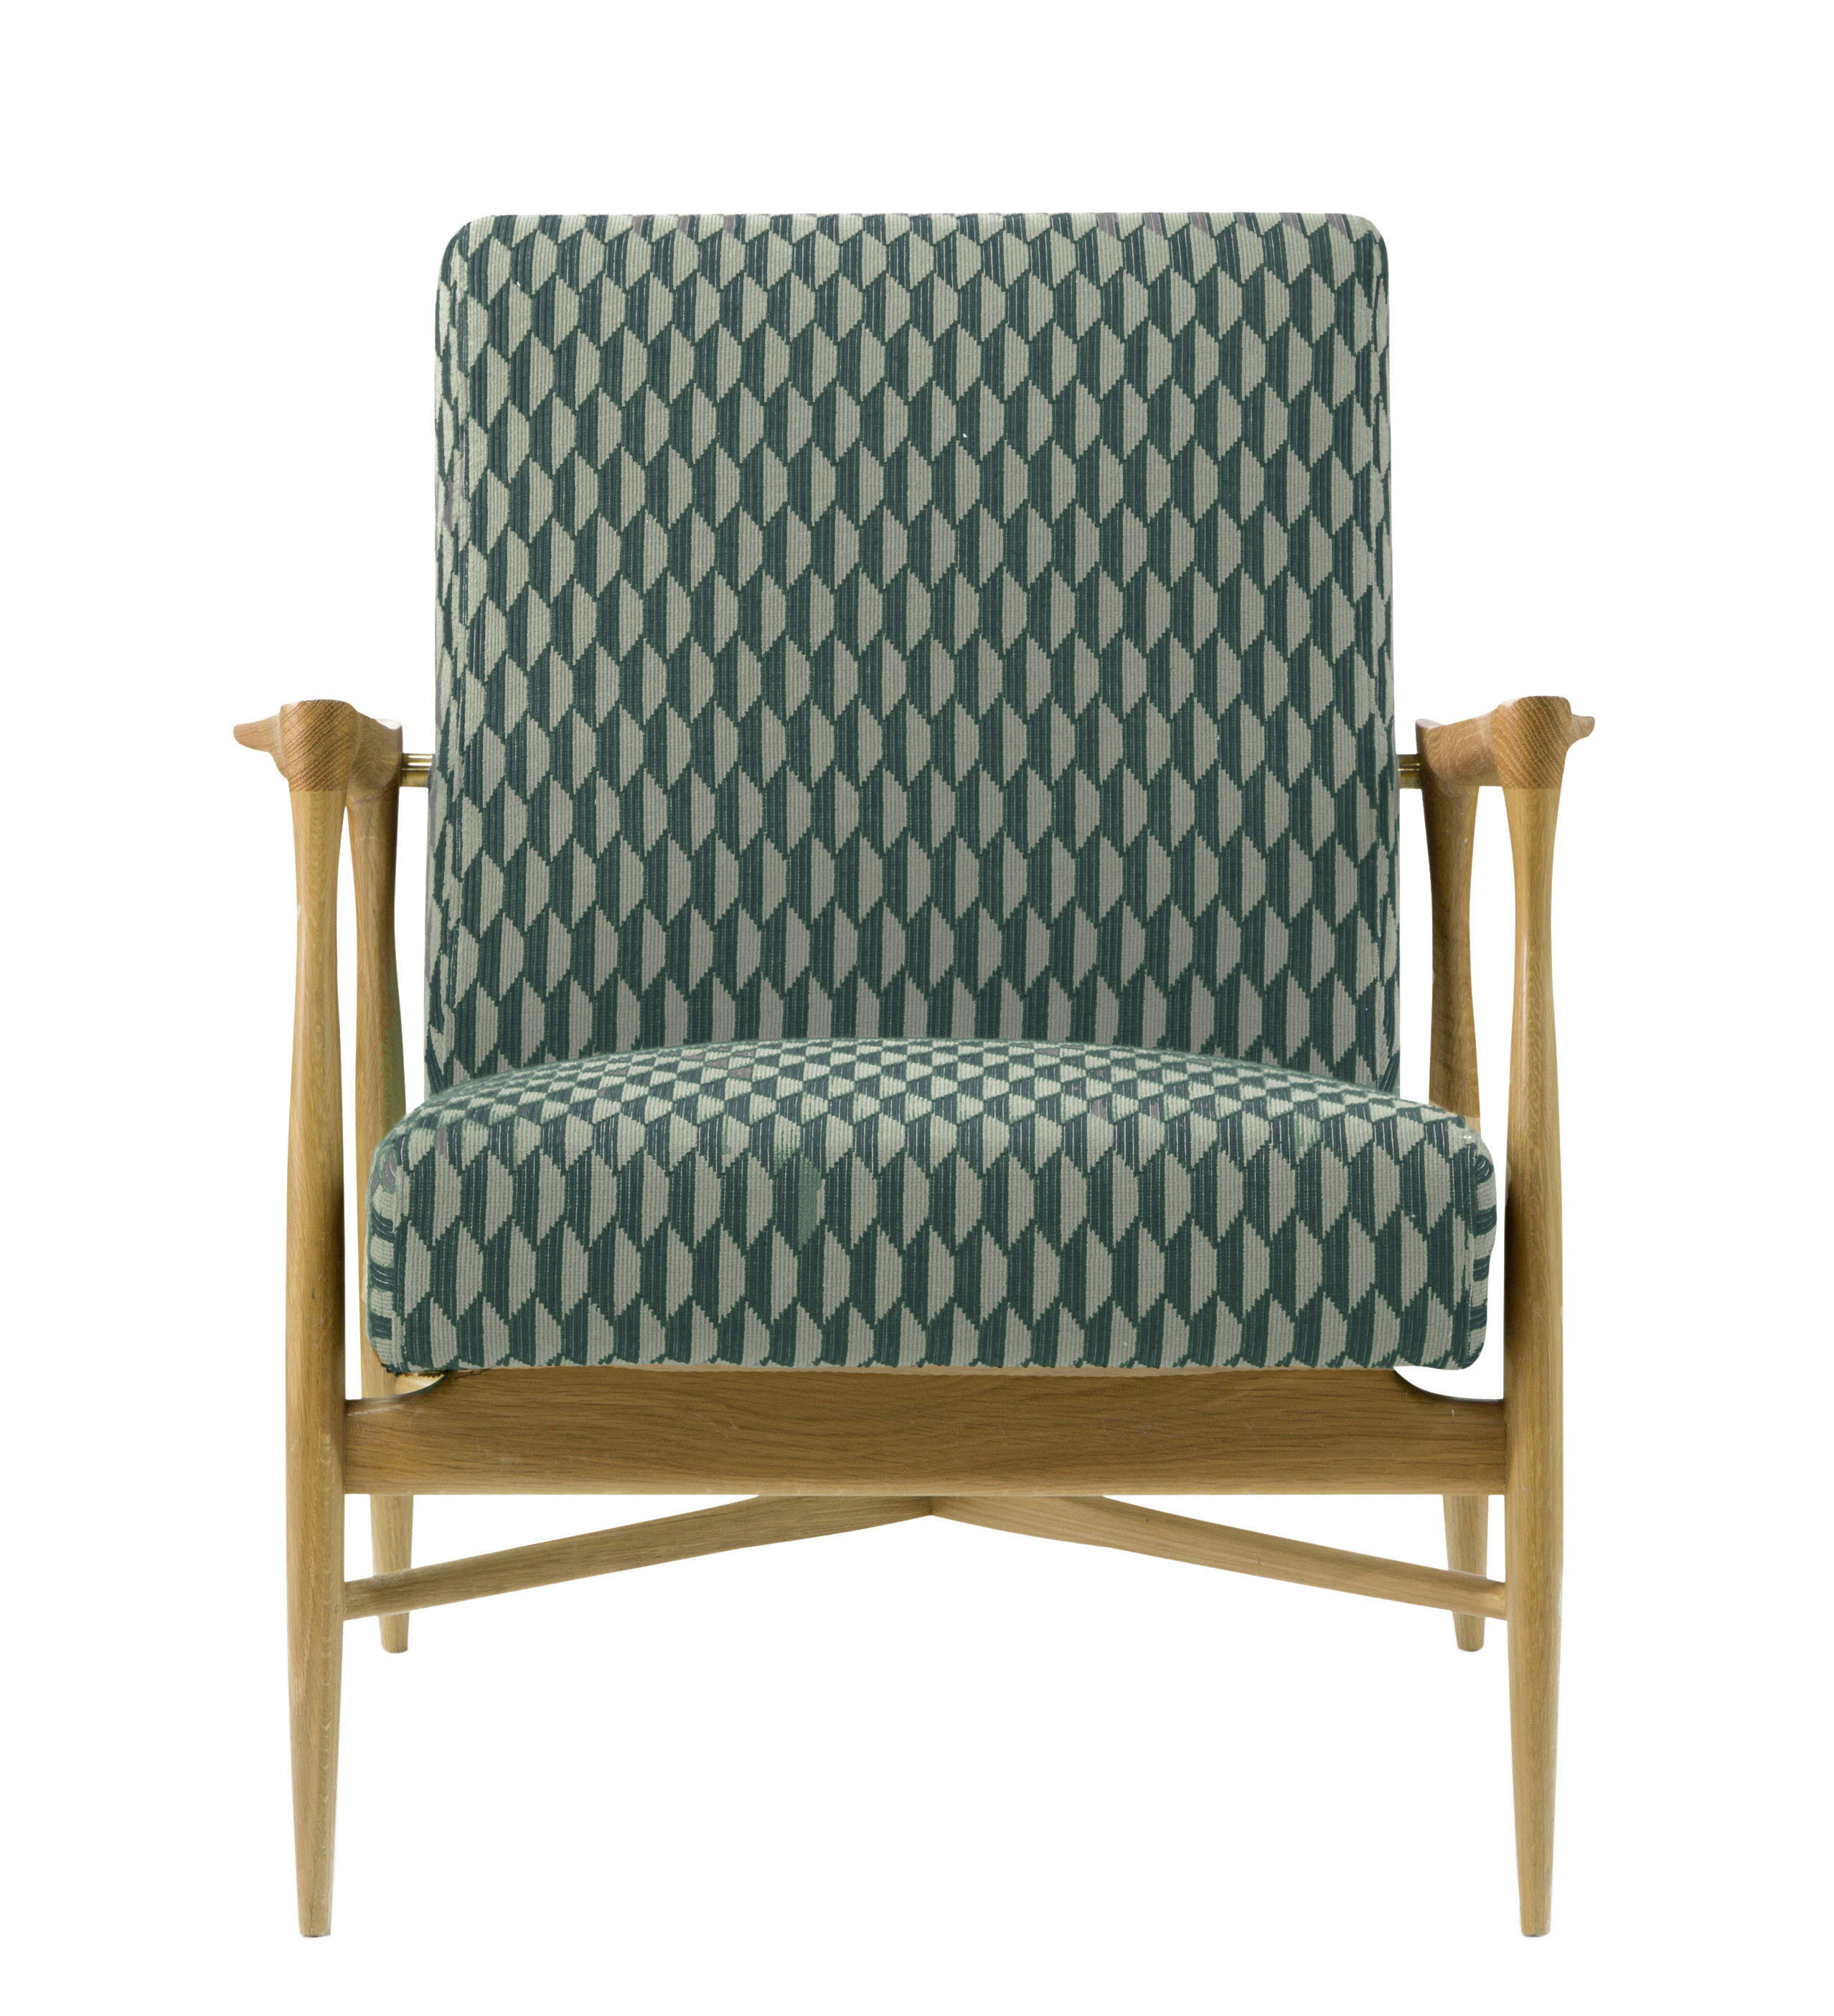 Furniture - Armchairs - Floating Padded armchair - / Fabric by RED Edition - Baku Celadon / Oak - Cotton, High resilience foam, Solid oak